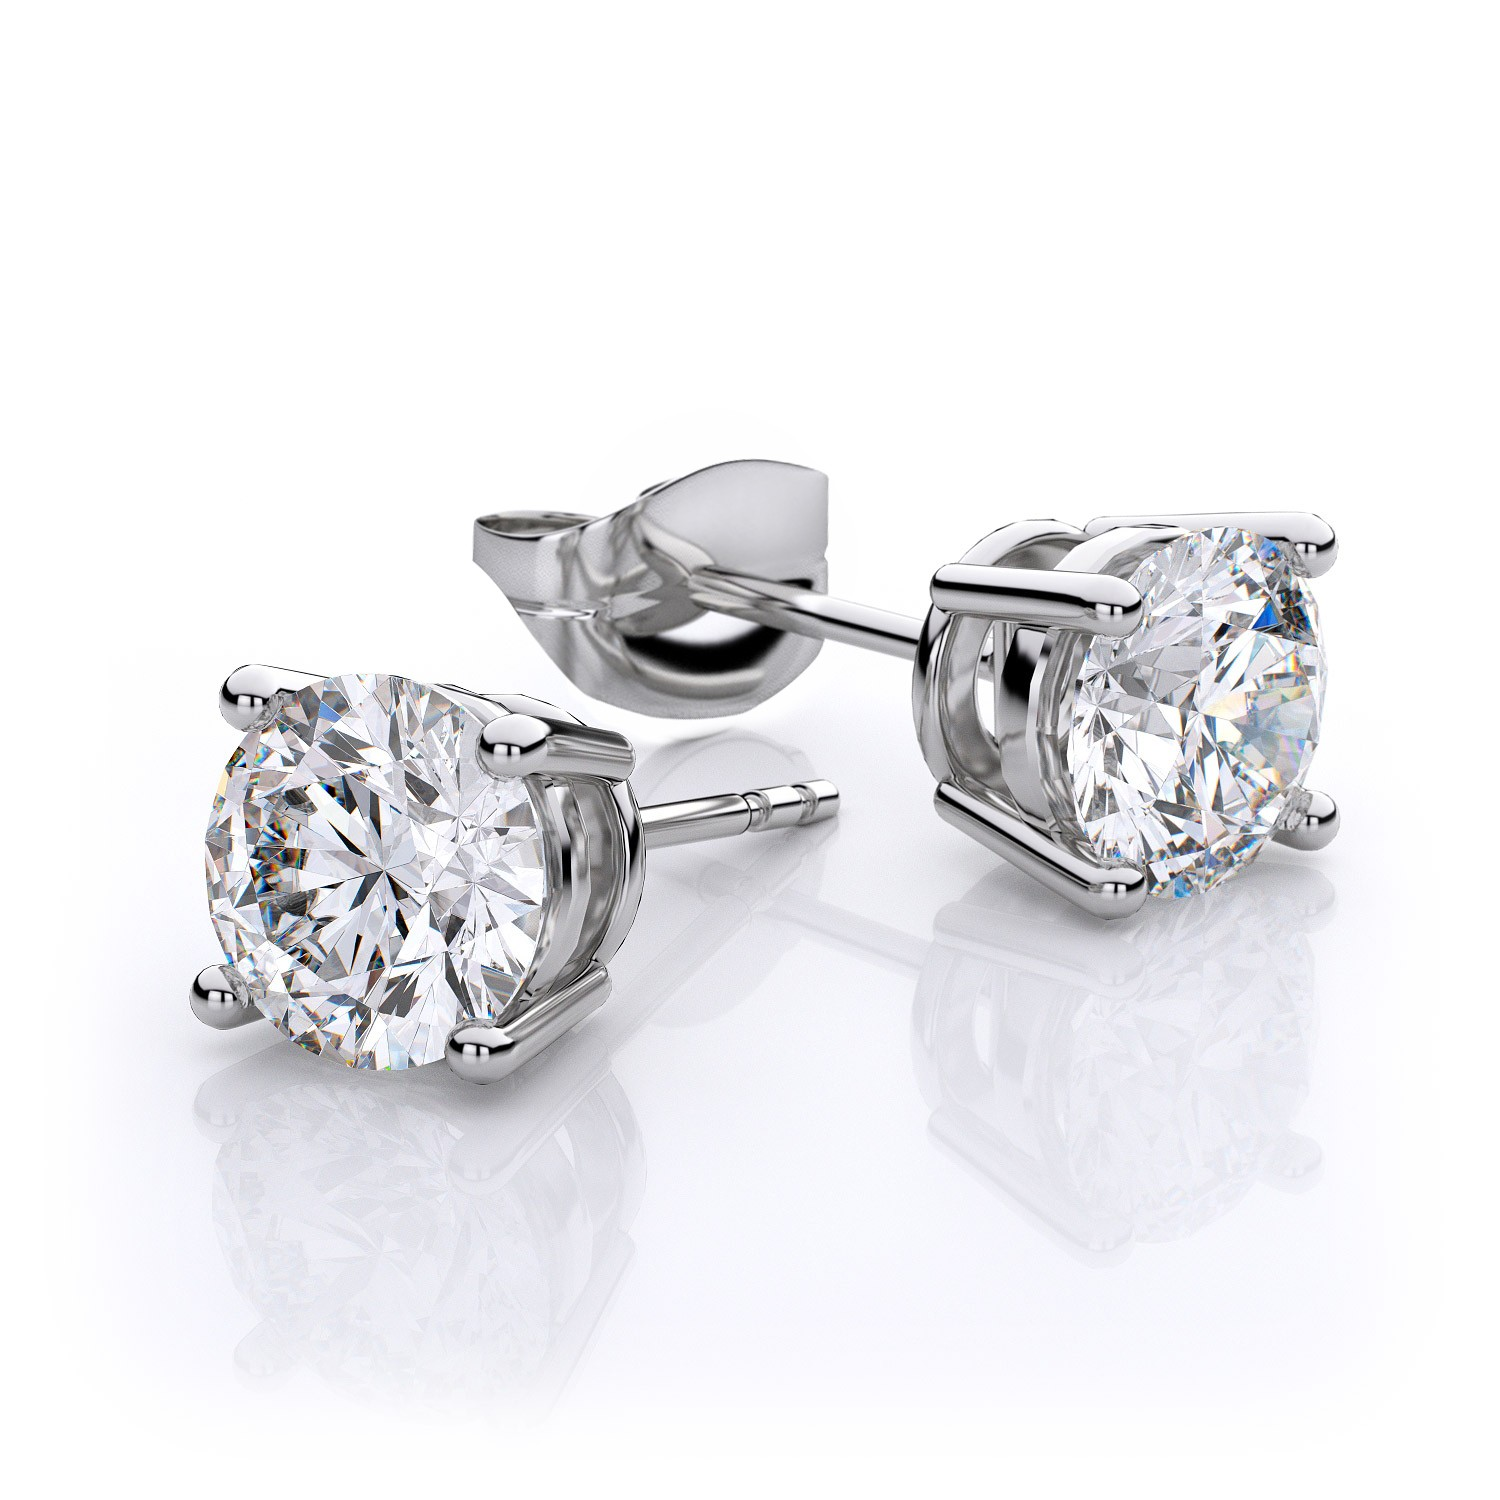 white gold diamond earrings ... 2.00 ct. t.w. 4 prong round diamond stud earrings in 14k white gold gia ngtwouv